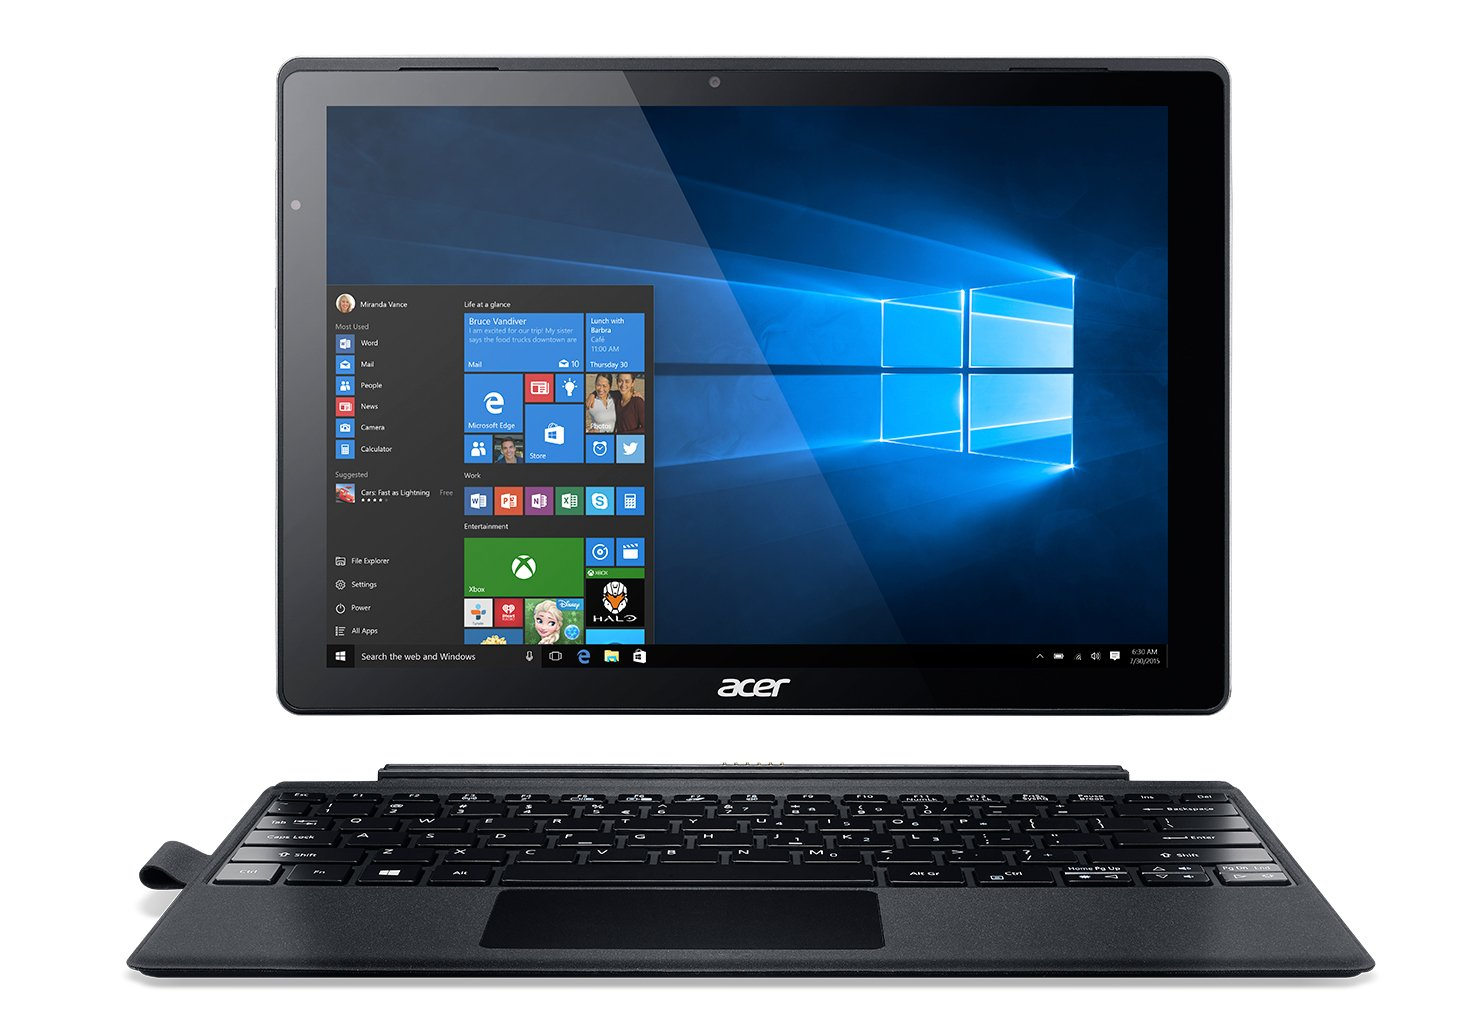 ACERPOWER MS-7177 DOWNLOAD DRIVER